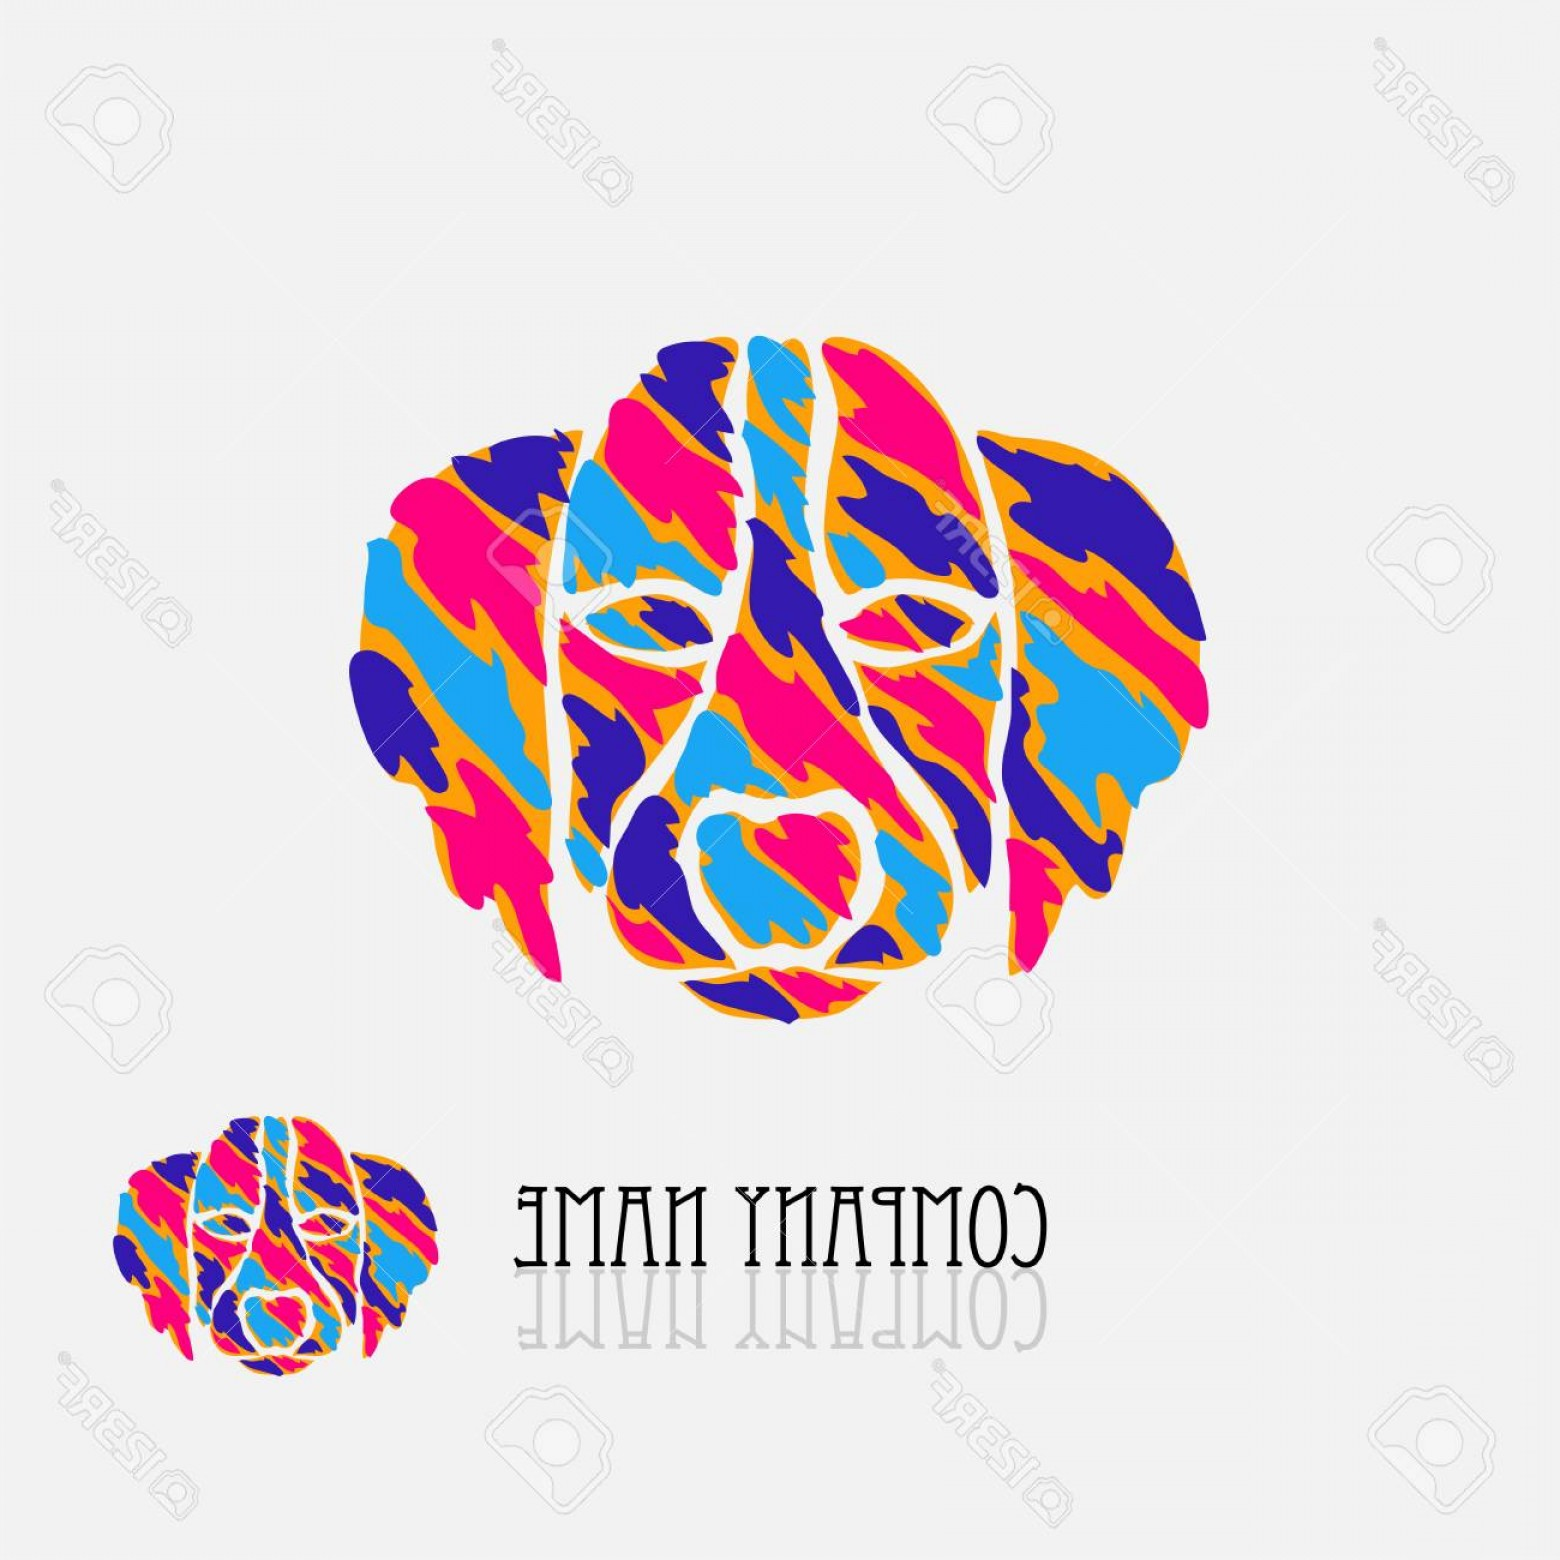 Jewelry Manufacturing Icon Vector: Photostock Vector Abstract Dog Sign Symbol In Vivid Colors Design Element Can Be Used For Corporate Identity Company E